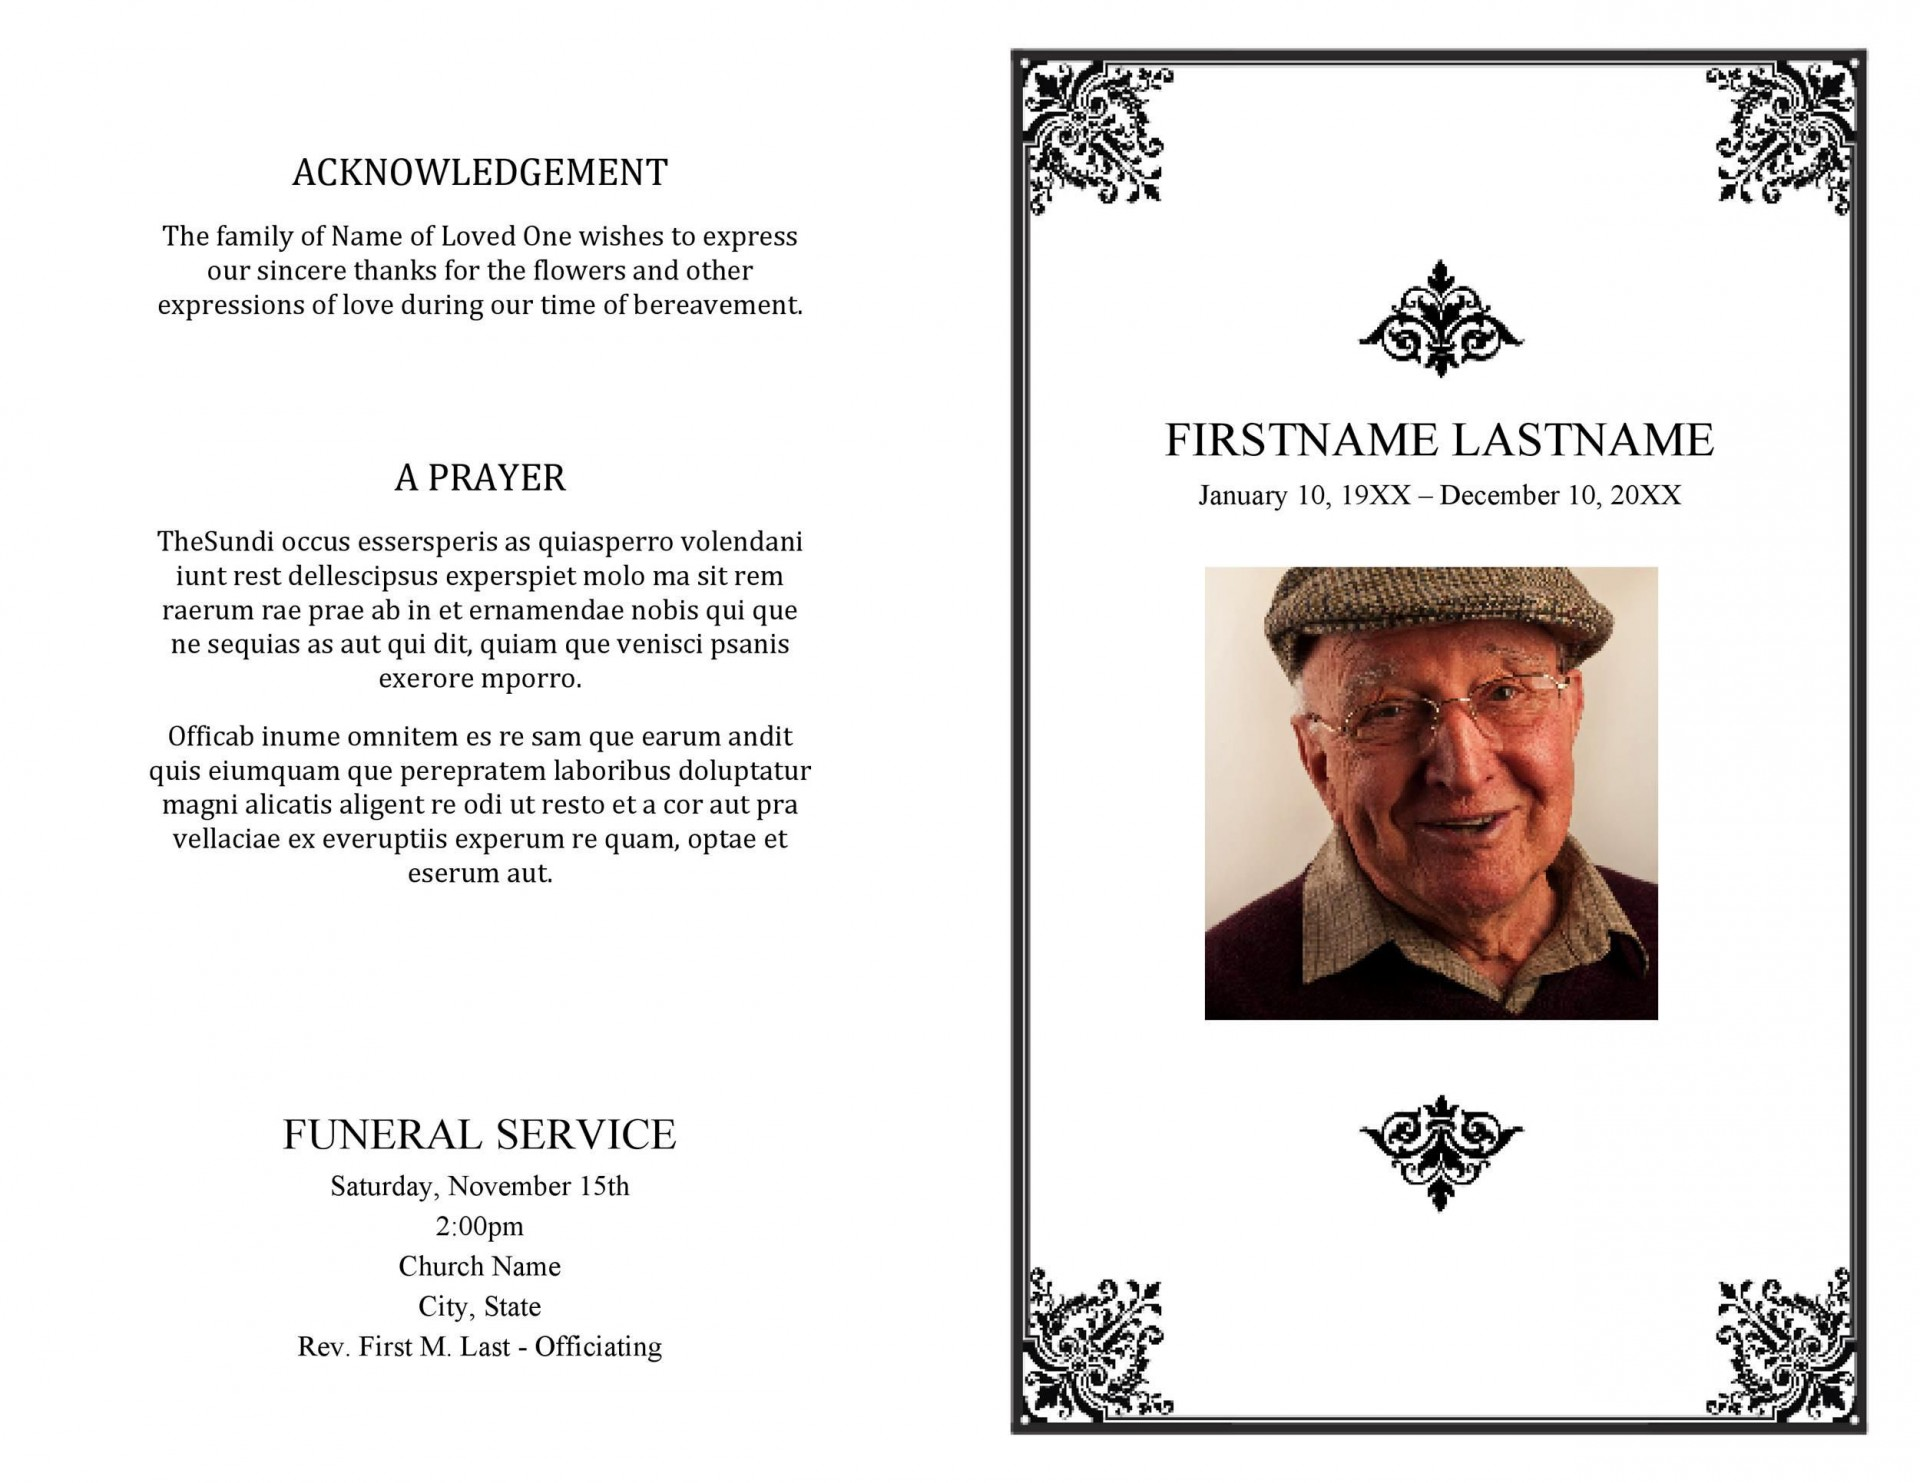 006 Rare Example Of Funeral Program Free High Resolution  Template Pdf Booklet Sample1920